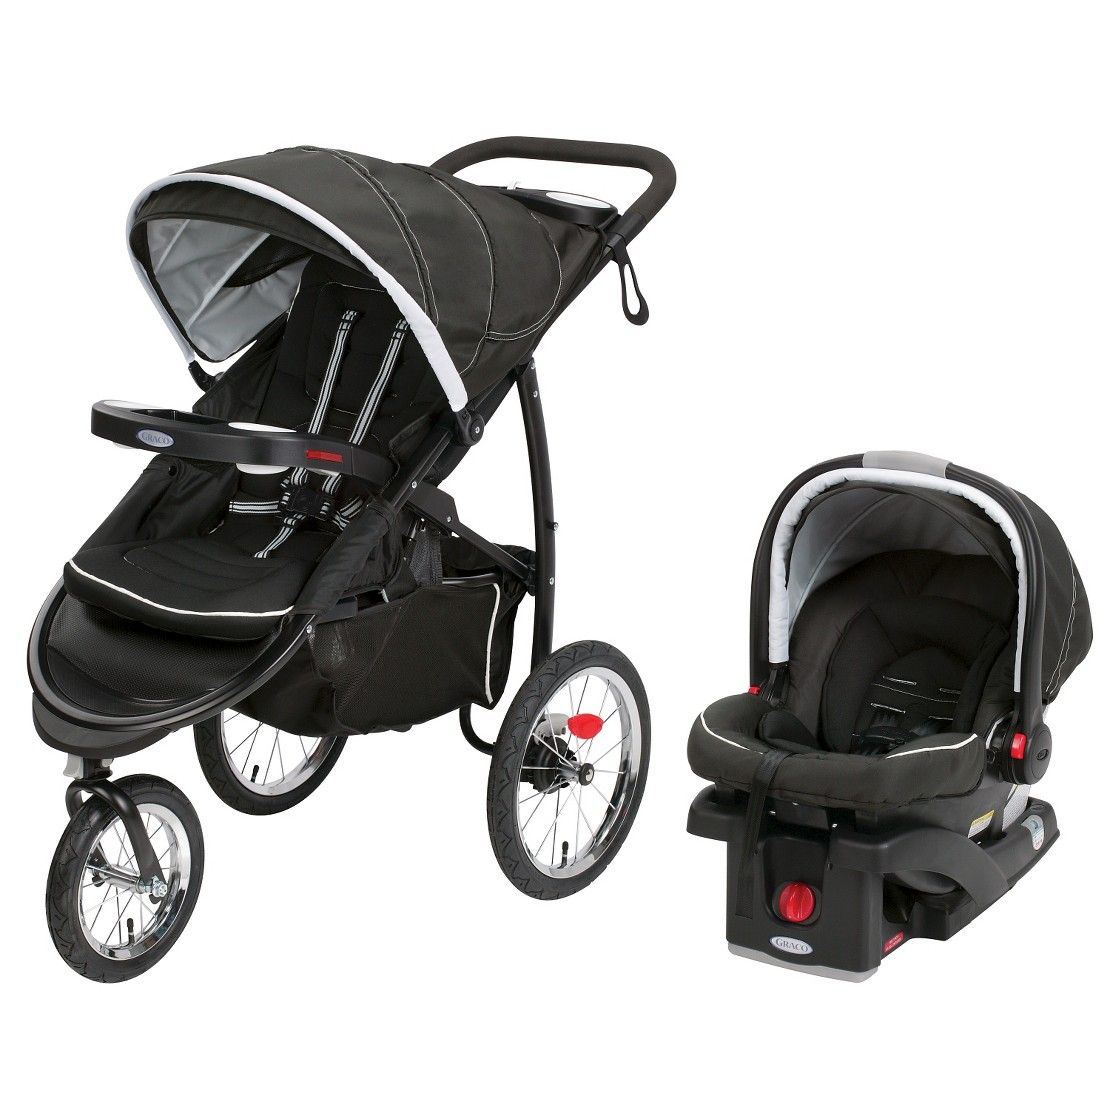 Graco Fastaction Jogger A Good Neutral Stroller For Baby